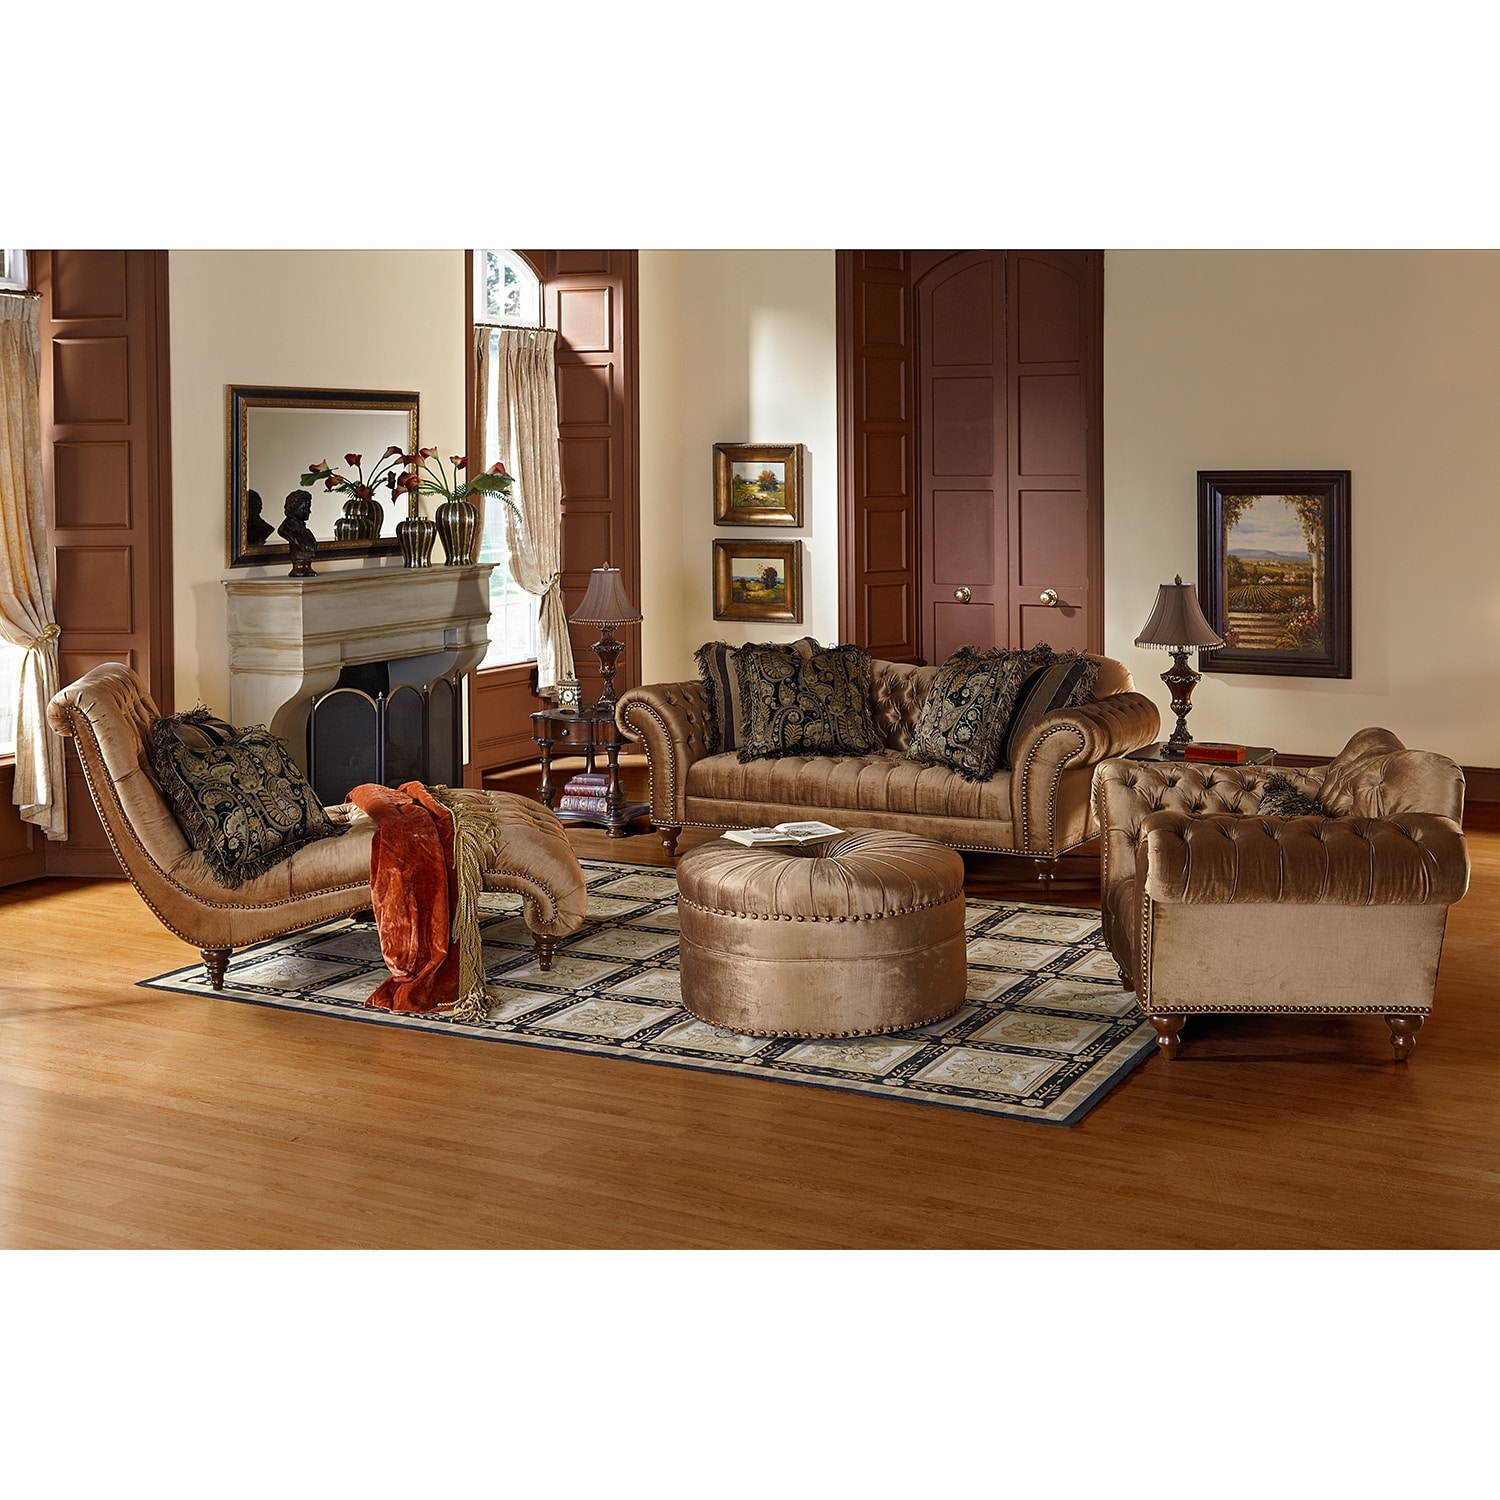 Value city furniture bar set furthermore american signature furniture